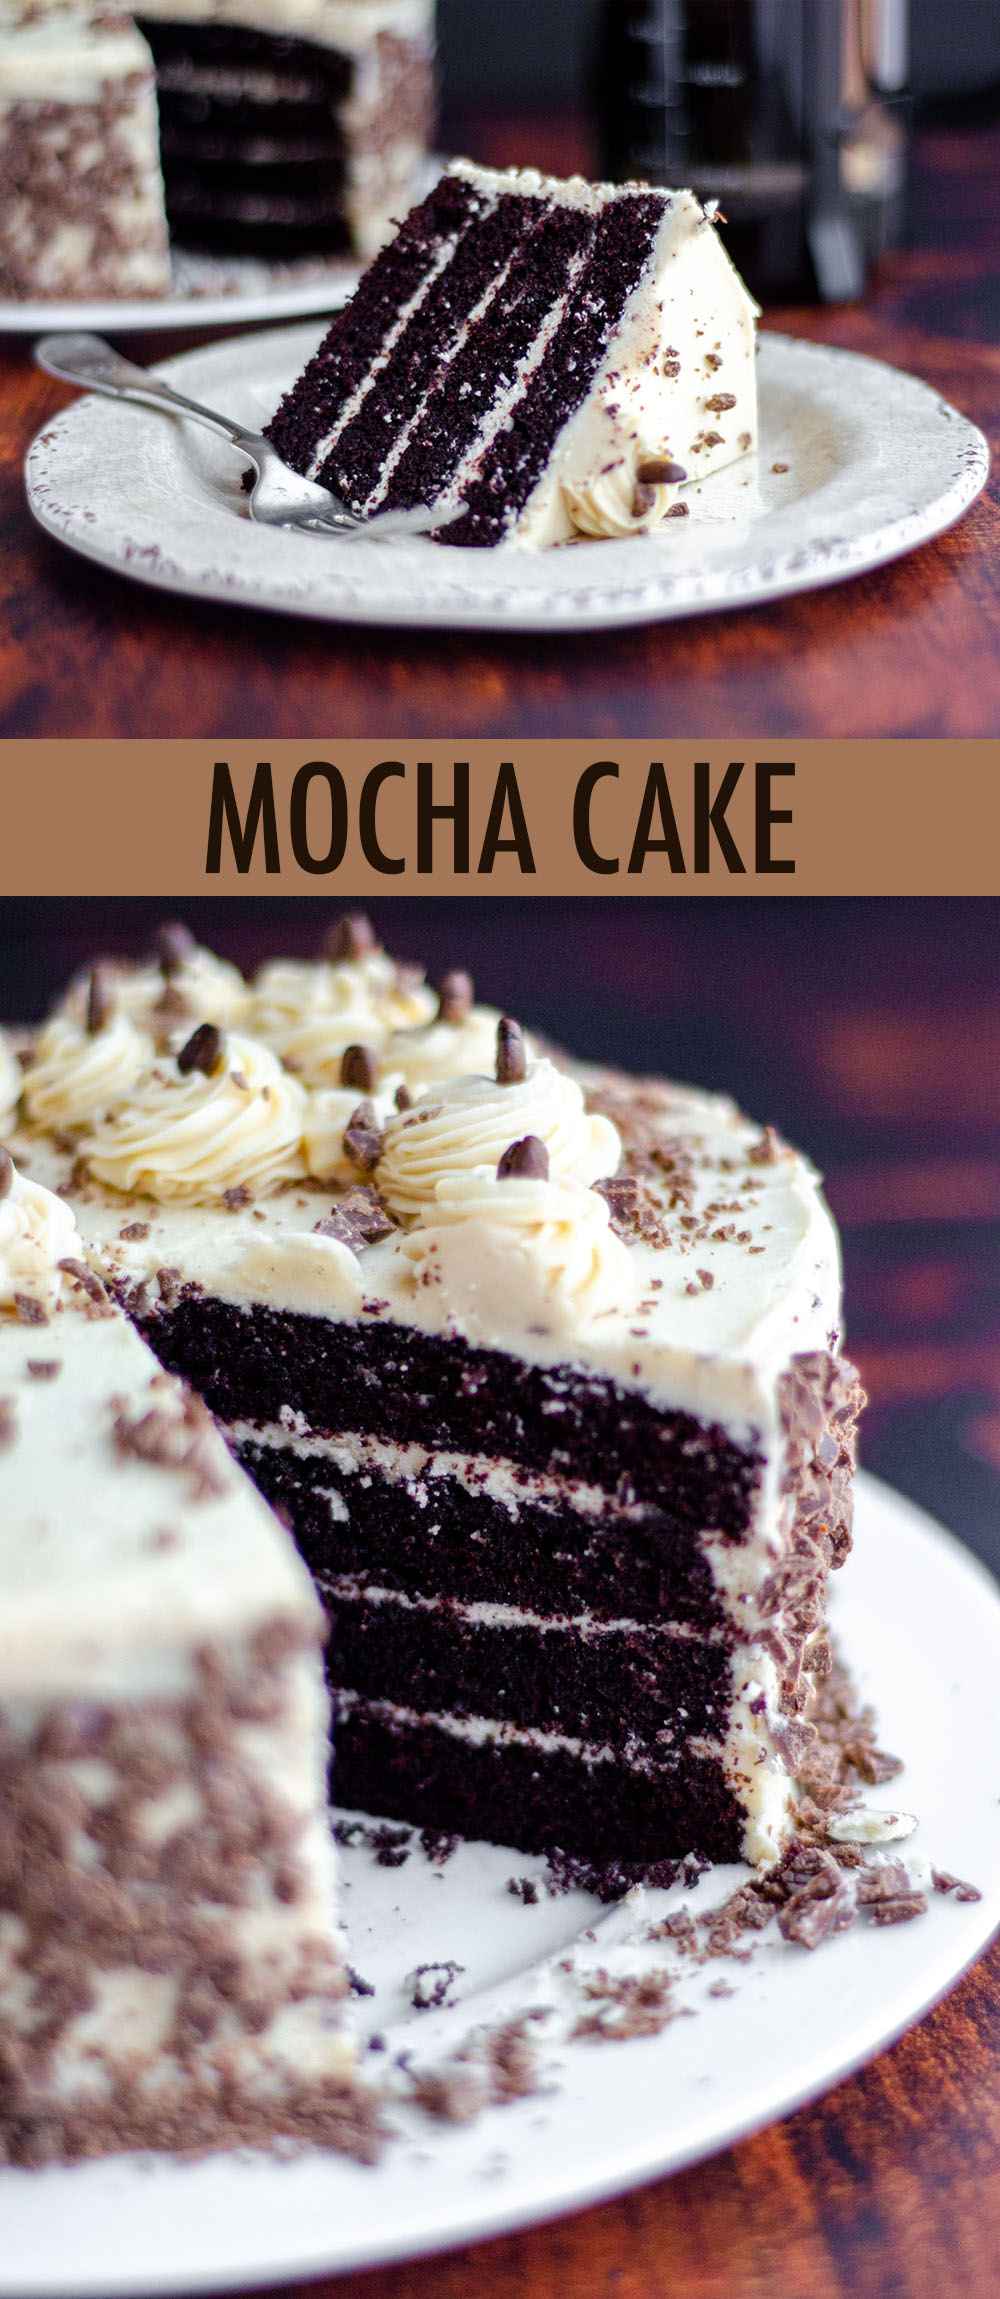 Mocha Cake With Coffee Buttercream Recipe In 2020 Coffee Flavored Cake Recipe Mocha Cake Chocolate Cake With Coffee